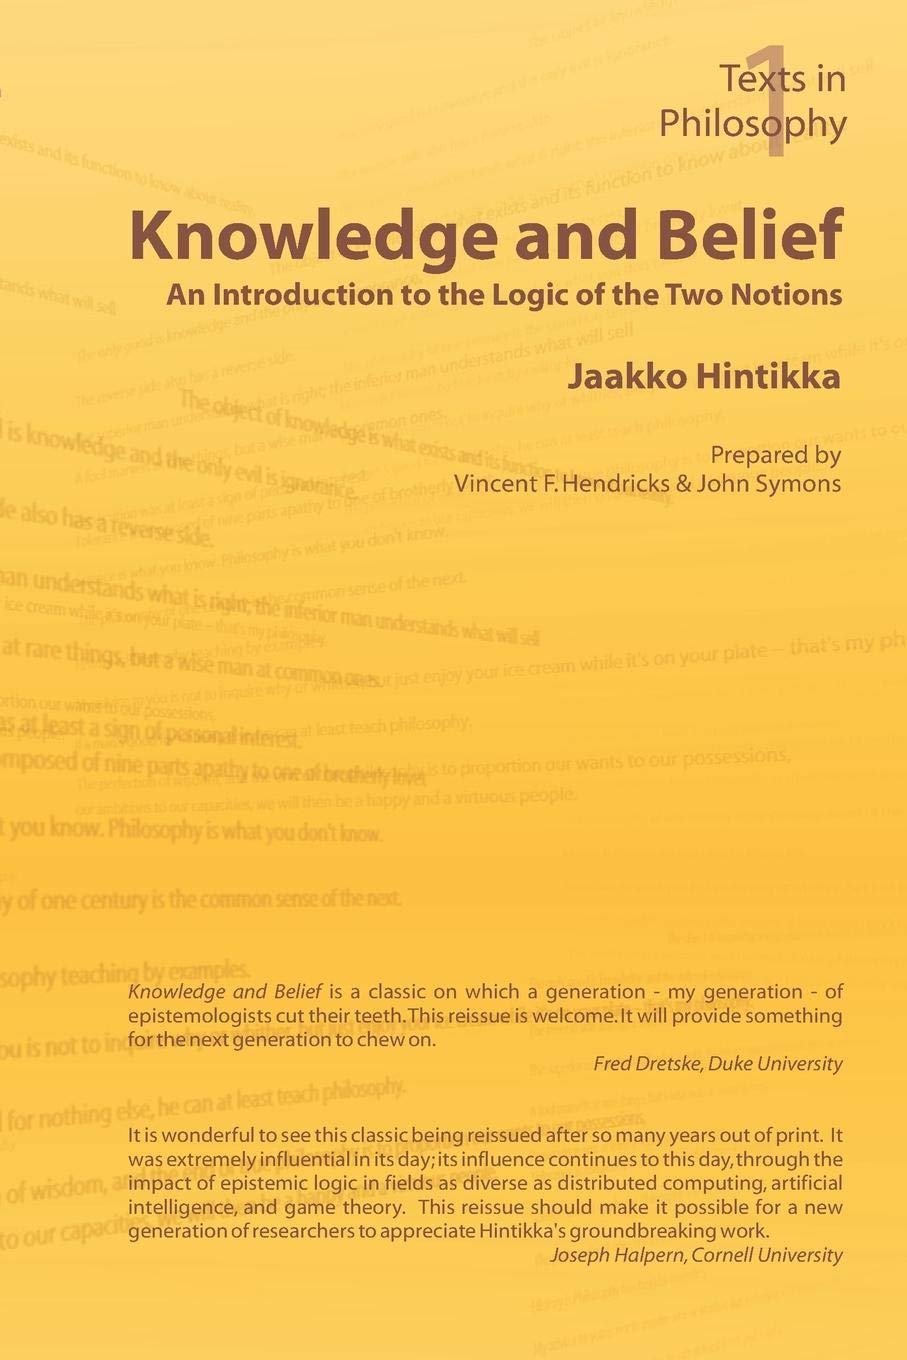 Knowledge and Belief - An Introduction to the Logic of the Two Notions (Texts in Philosophy S), Jaakko Hintikka